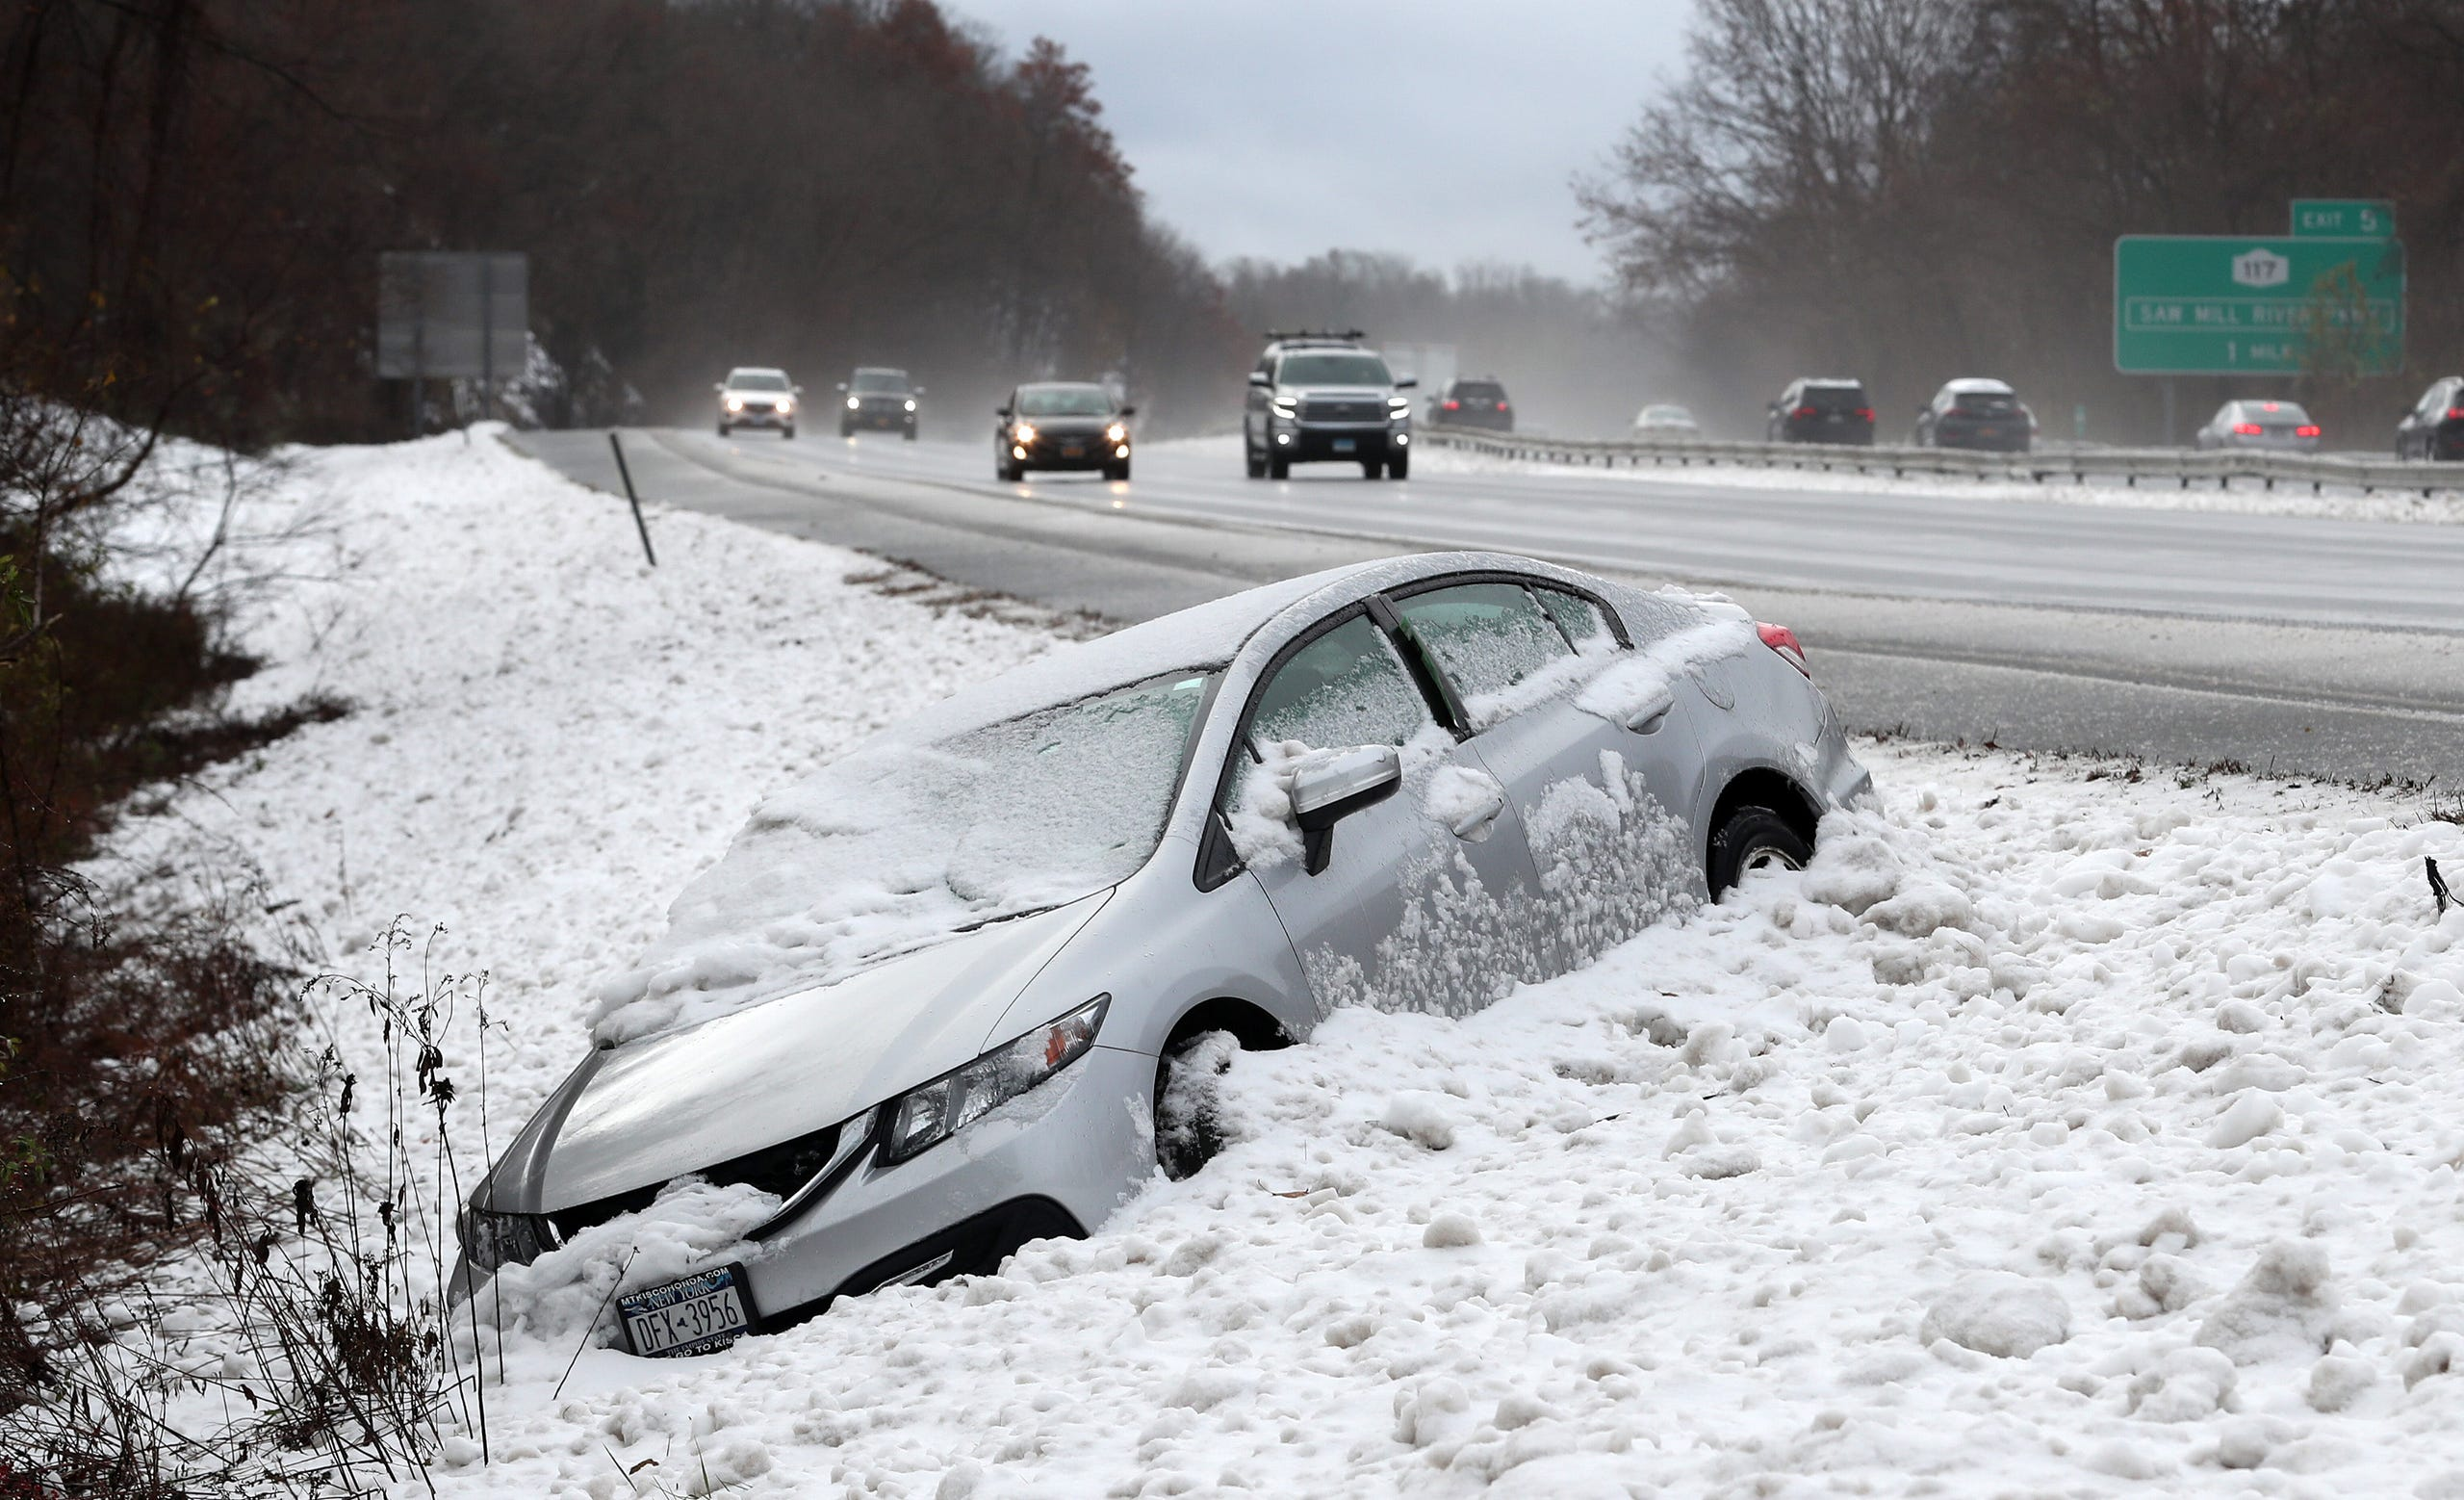 Photos: Snow, road conditions in Lower Hudson Valley